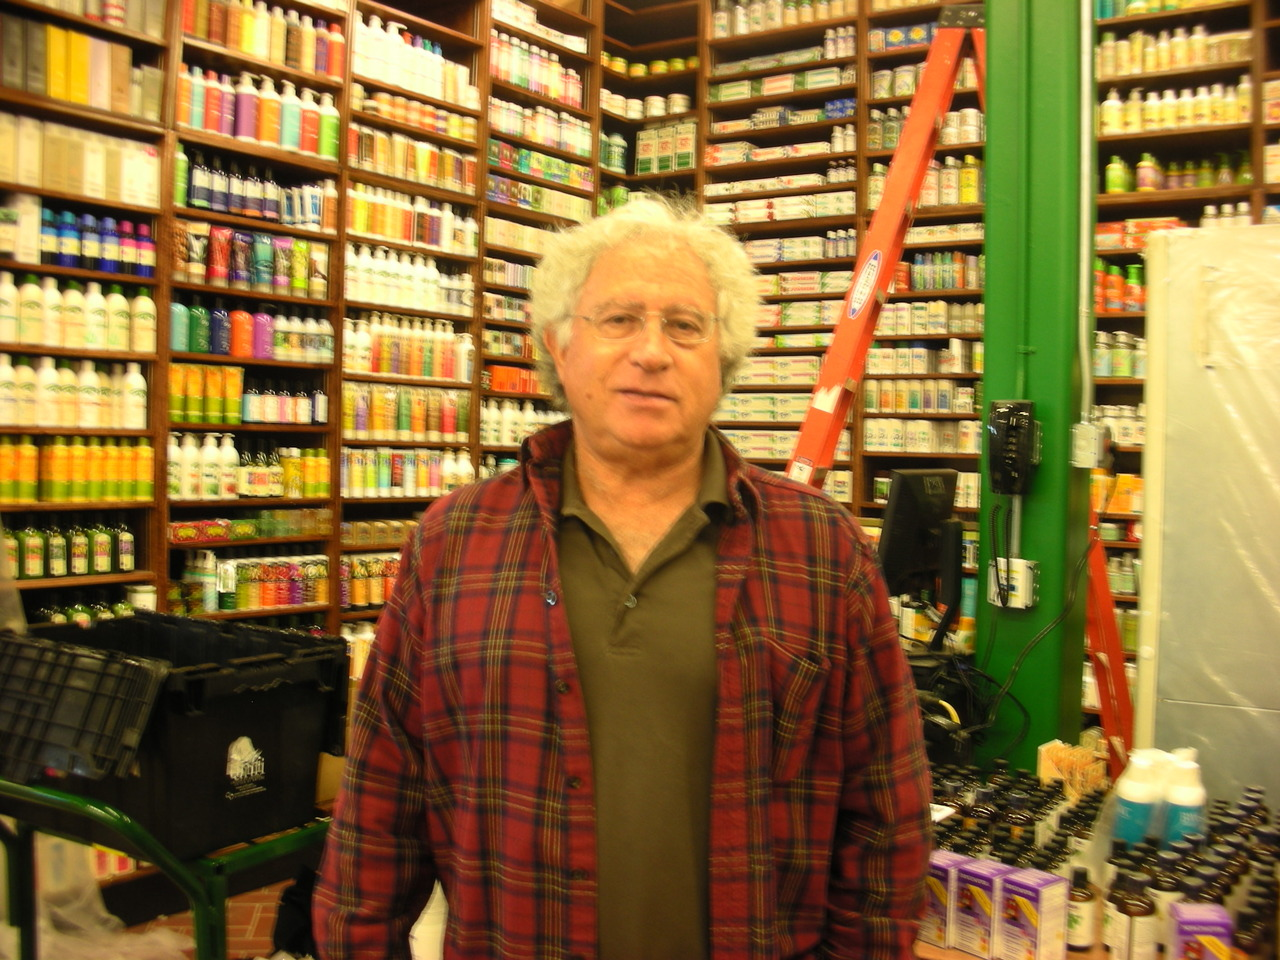 "Got a personal pre-opening tour of Stamford's Fairway Market. Howie Glickberg (he's the guy in the photo), grandson of the man who started the original store on Manhattan's upper west side, showed me the enormous 85,000 square foot space — the largest of all the Fairways.   It's not finished, but people were busy stacking shelves and checking equipment.   All I can say is — I'm impressed. I already have a shopping and lunch date with one of my friends, just to fill up on all our regular groceries plus great olive oil, hand-rolled bagels, fresh fish for dinner, gluten-free almost everything you can think of, an enormous selection of produce and all the Thanksgiving products you need, either regular or organic.   But then there's the Cafe. A place to get lunch and sit in the glassed-in atrium and have some social time. My first thought about the Cafe was that it reminded me of the cocktail hour at a wedding or bar mitzvah. Honestly, there's going to be a carving station with things like prime rib and kobe beef, salmon and pastrami,  a ""wokery"" and pasta station where you get to pick your personal stirfry ingredients or pasta additions and a chef will cook up your food right then and there, a salad station (of course), soup station, pizza (from a brick oven), sandwiches and paninis, and sushi. There will also be a chef cooking fresh burgers, hot dogs and Philly cheesesteaks (fries with that!). And the snack and dessert stations: smoothies, gelato. A barista bar with different coffees and pastries.   Can I spend the whole day? Hmmm. Forgot to ask about wireless internet service. Have to make a quick phone call….."